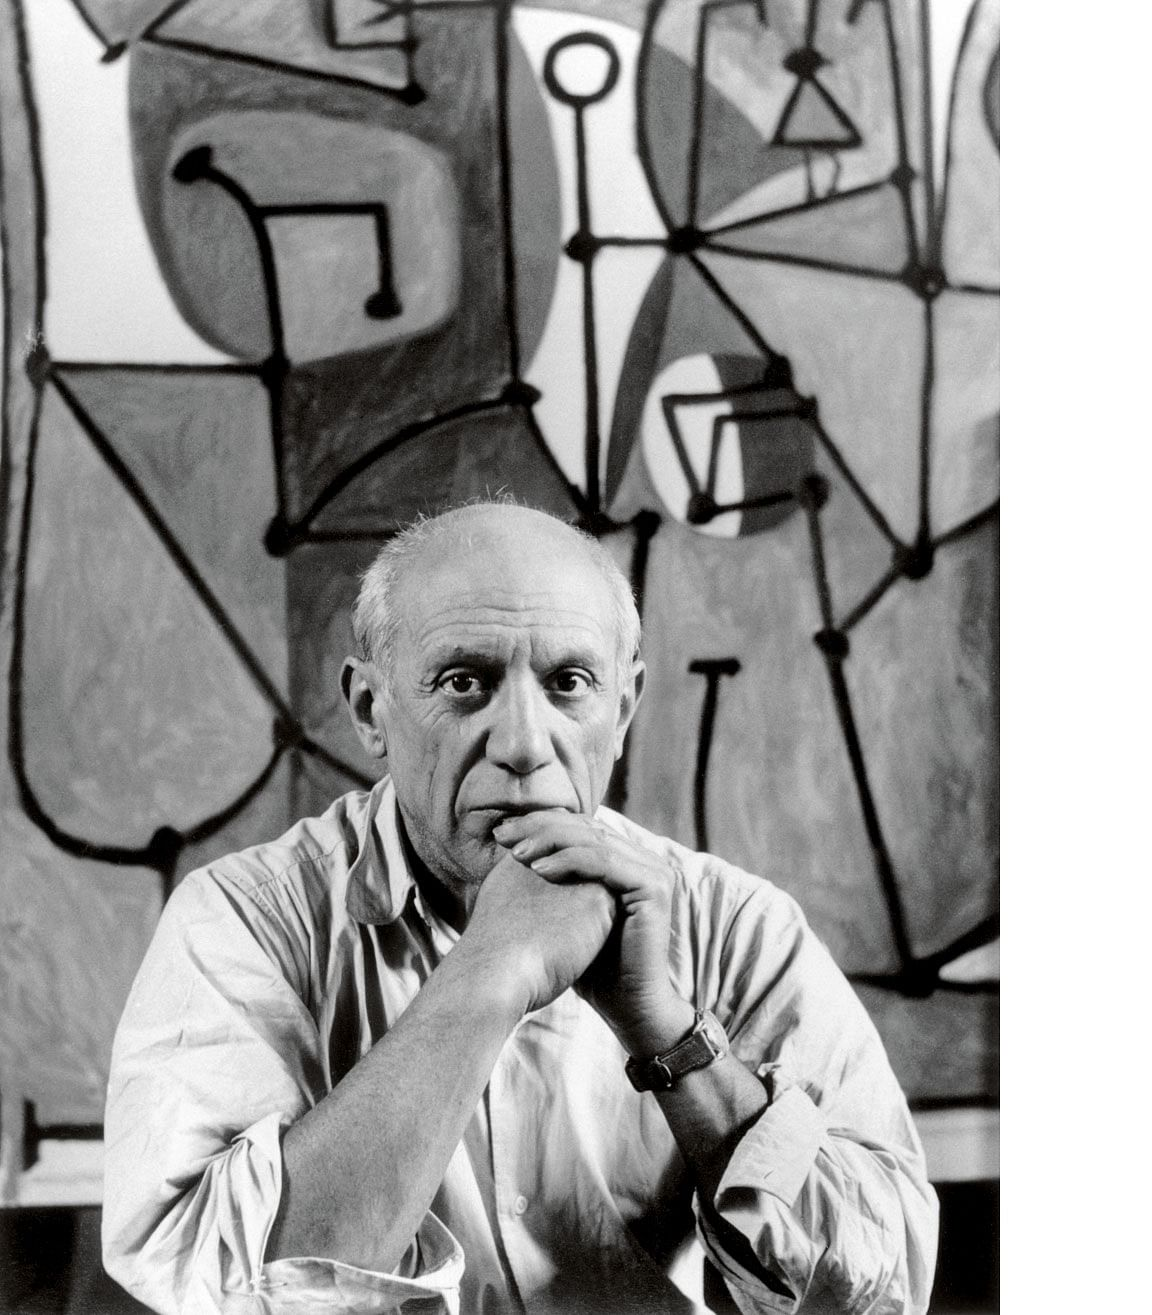 Picasso painted with an indefatigable energy till late into the night before he died the next day at the age of 91